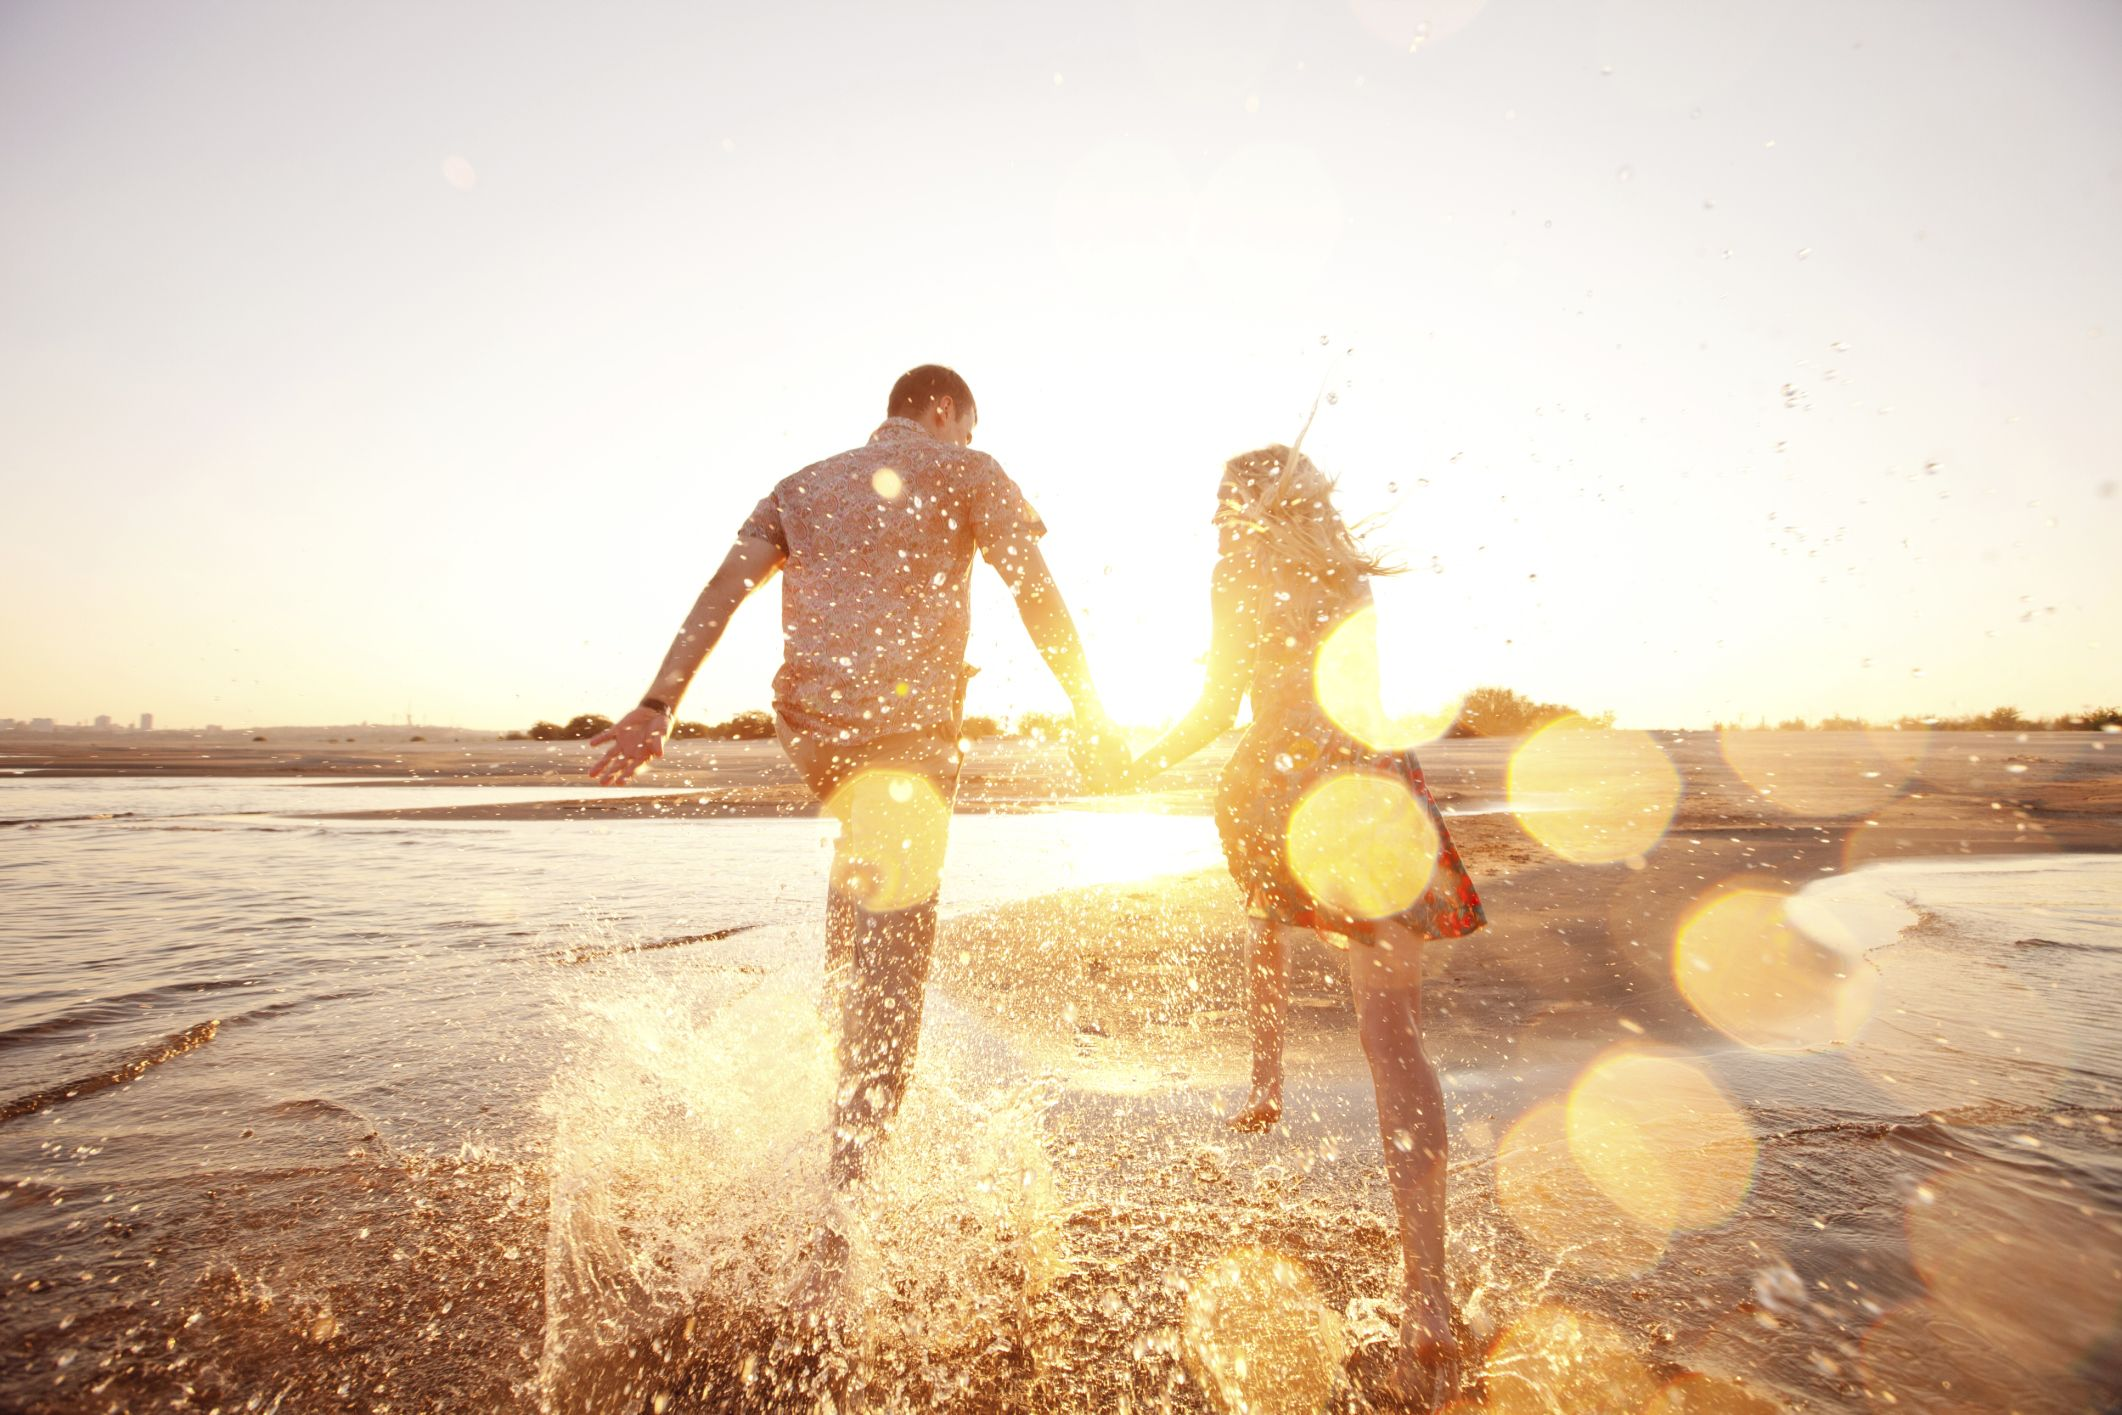 Your perfect day at the beach may have nothing to do with